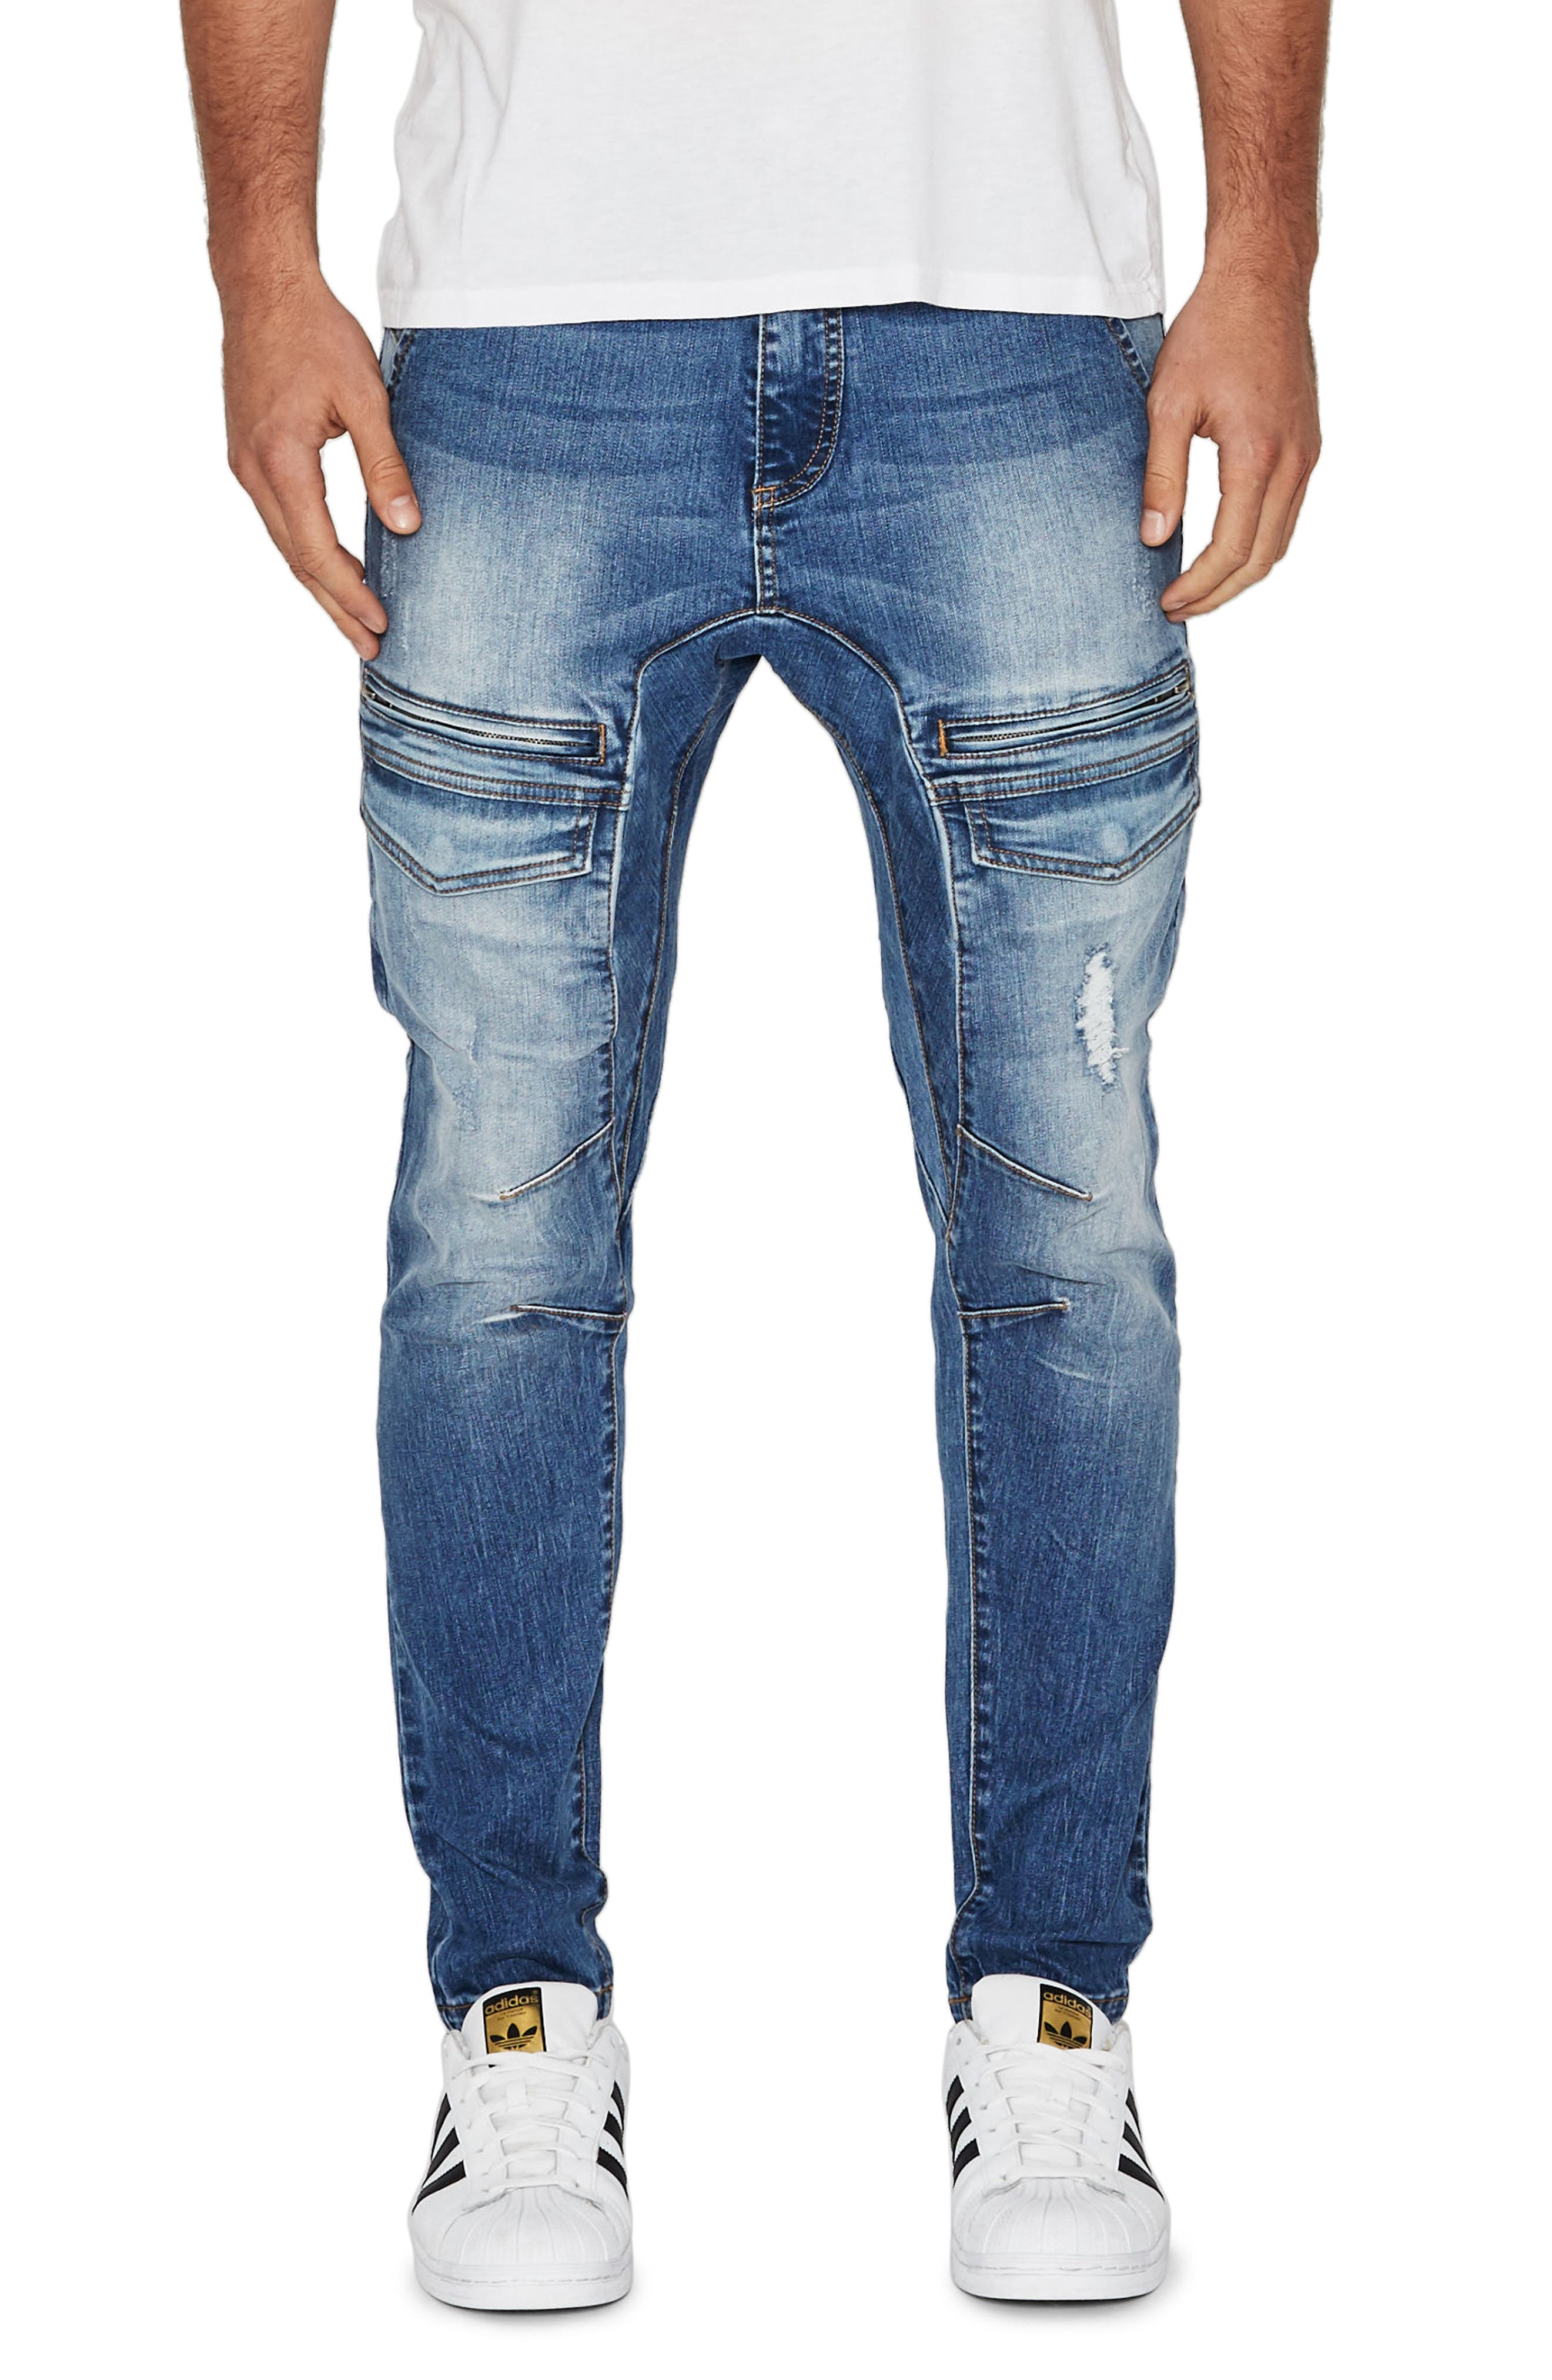 NXP Hurricane Slim Fit Jeans (Lincoln Blue)